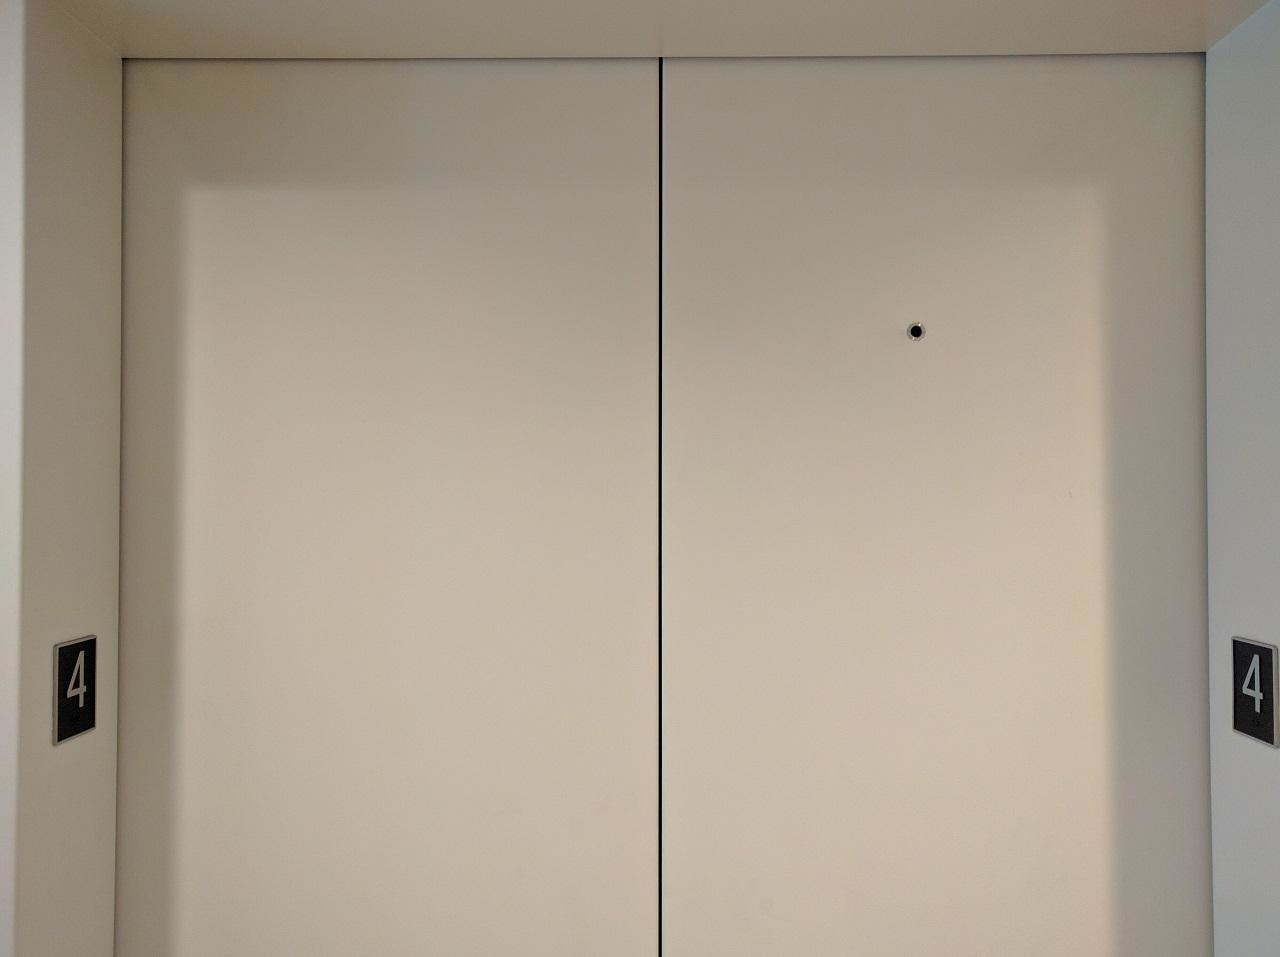 That Tiny Hole On Elevator Doors